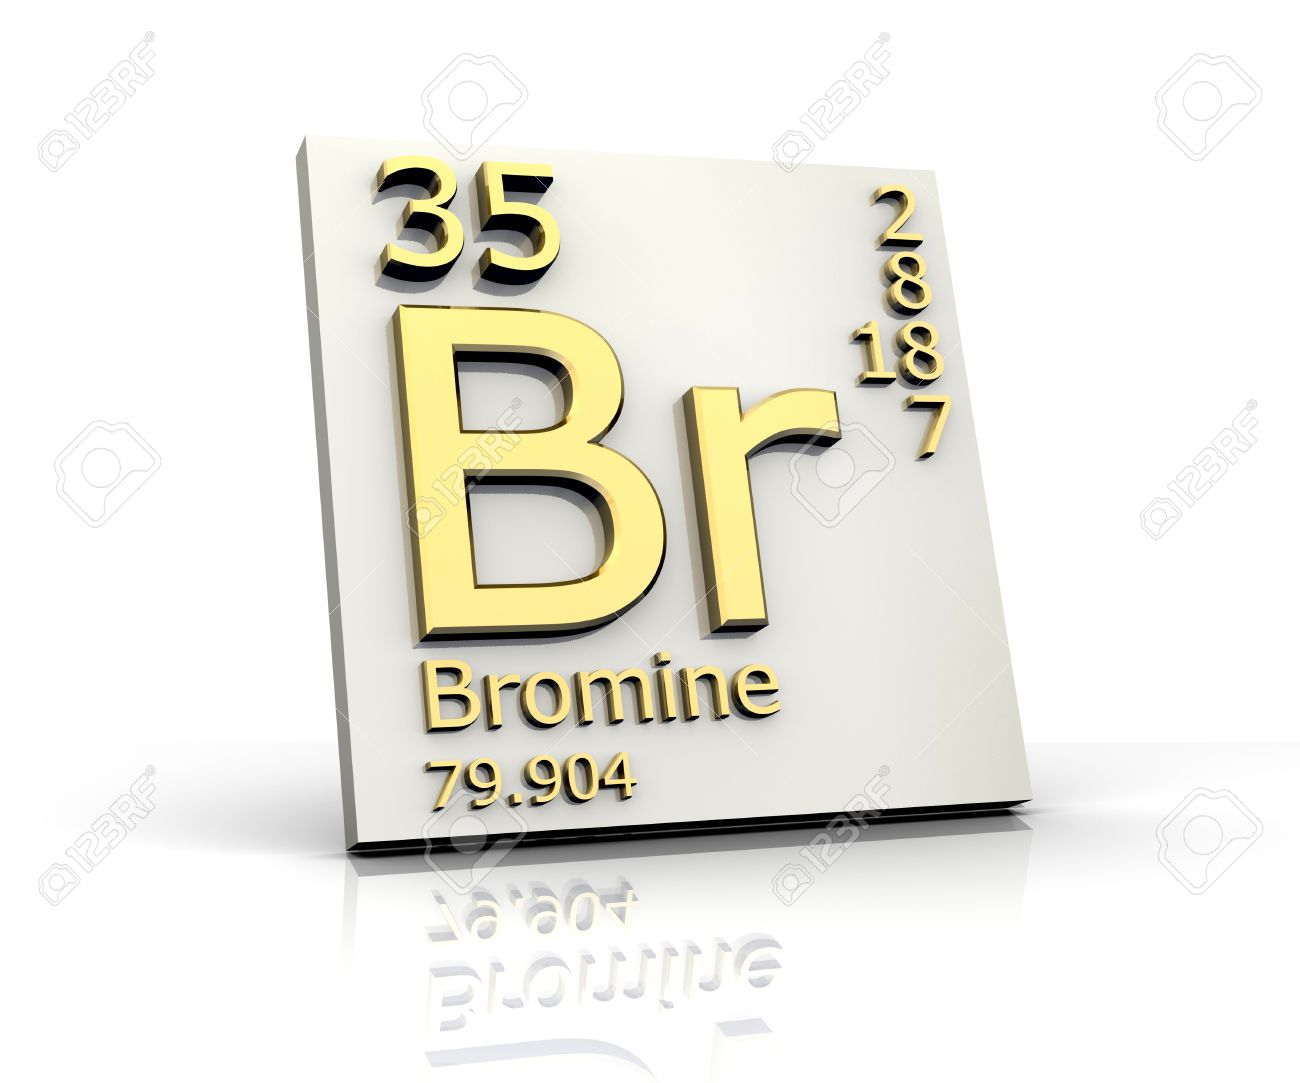 Bromine form periodic table of elements stock photo picture and bromine form periodic table of elements stock photo 4315570 gamestrikefo Image collections